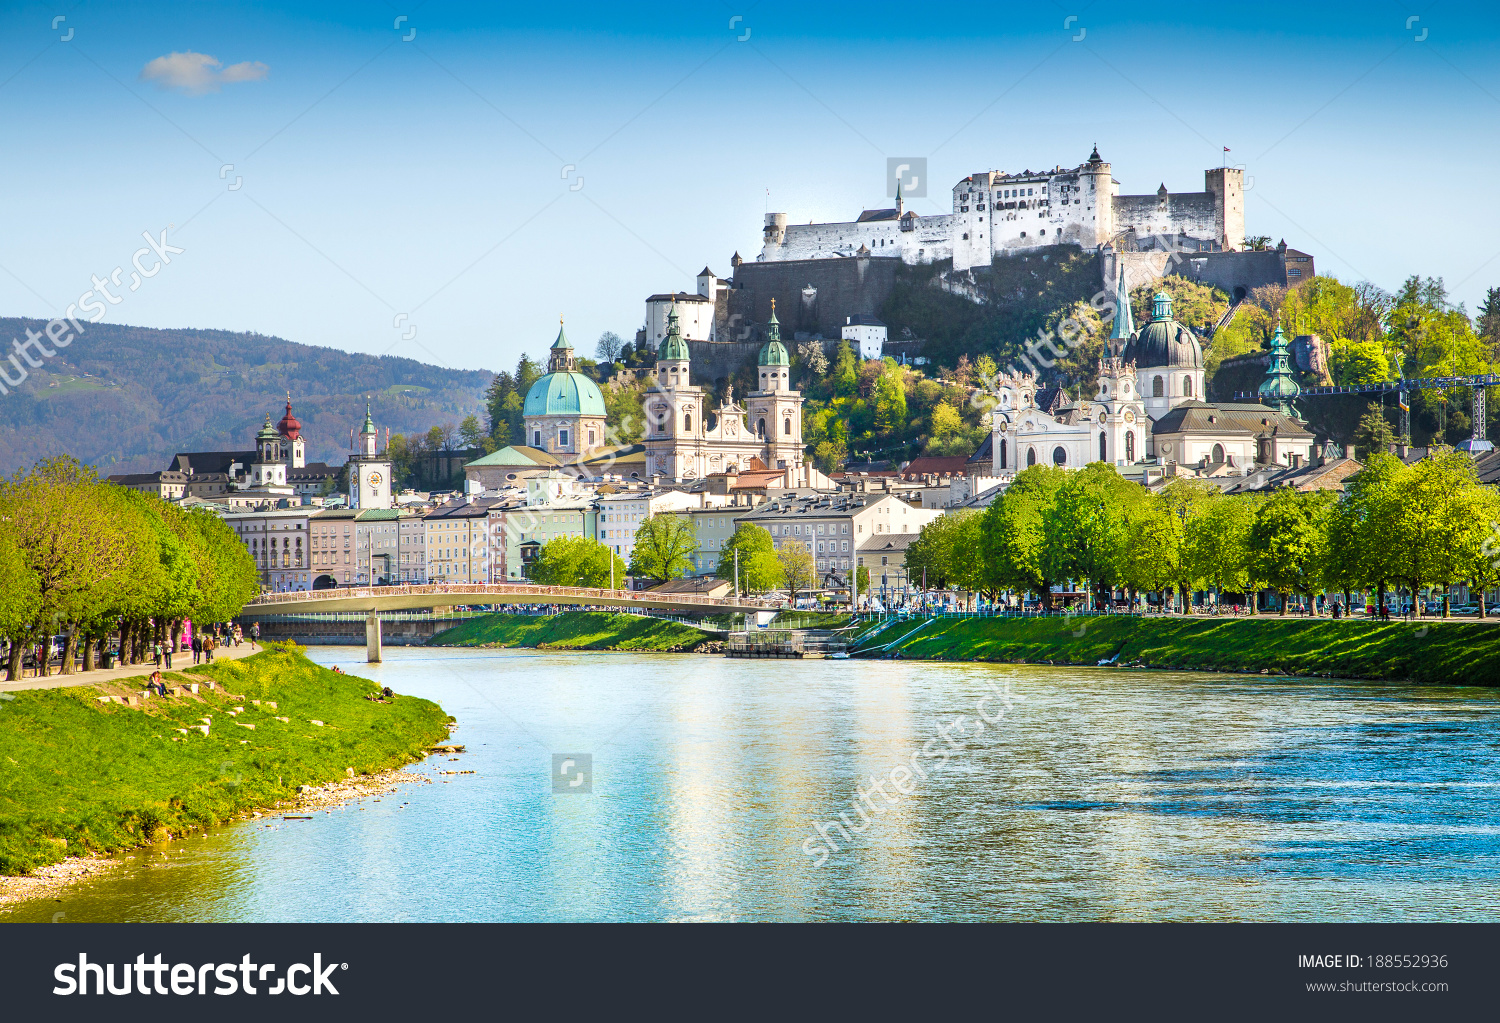 Beautiful View Salzburg Skyline Festung Hohensalzburg Stock Photo.